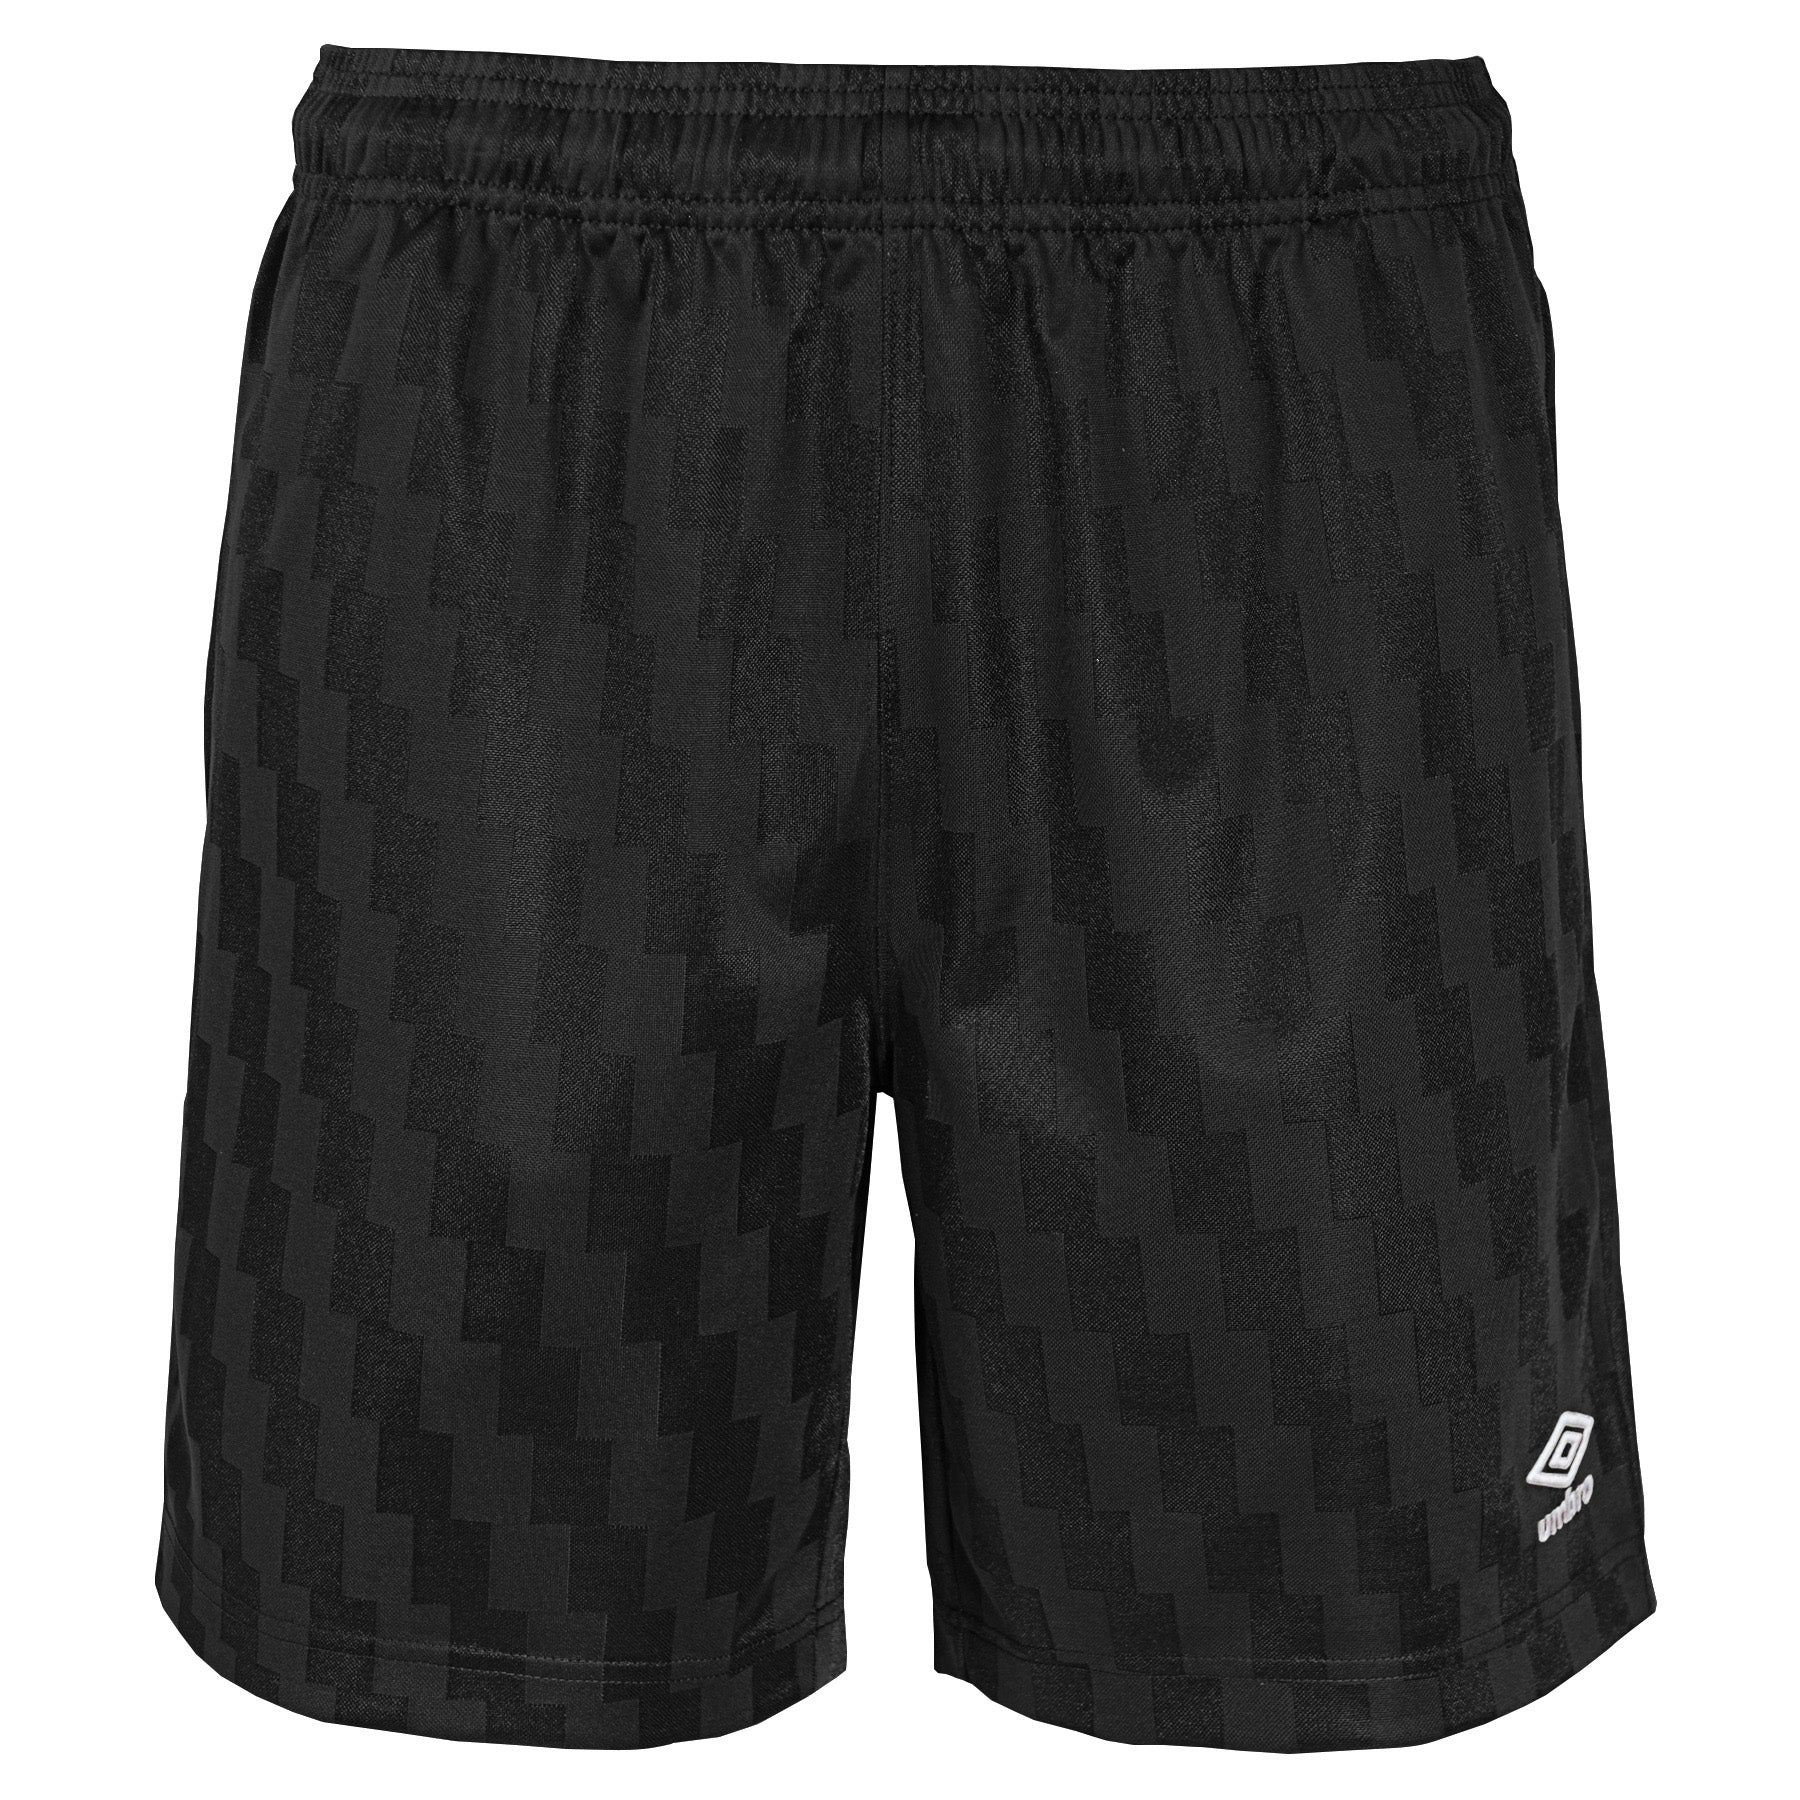 STRIPE STRIKER SHORTS V2